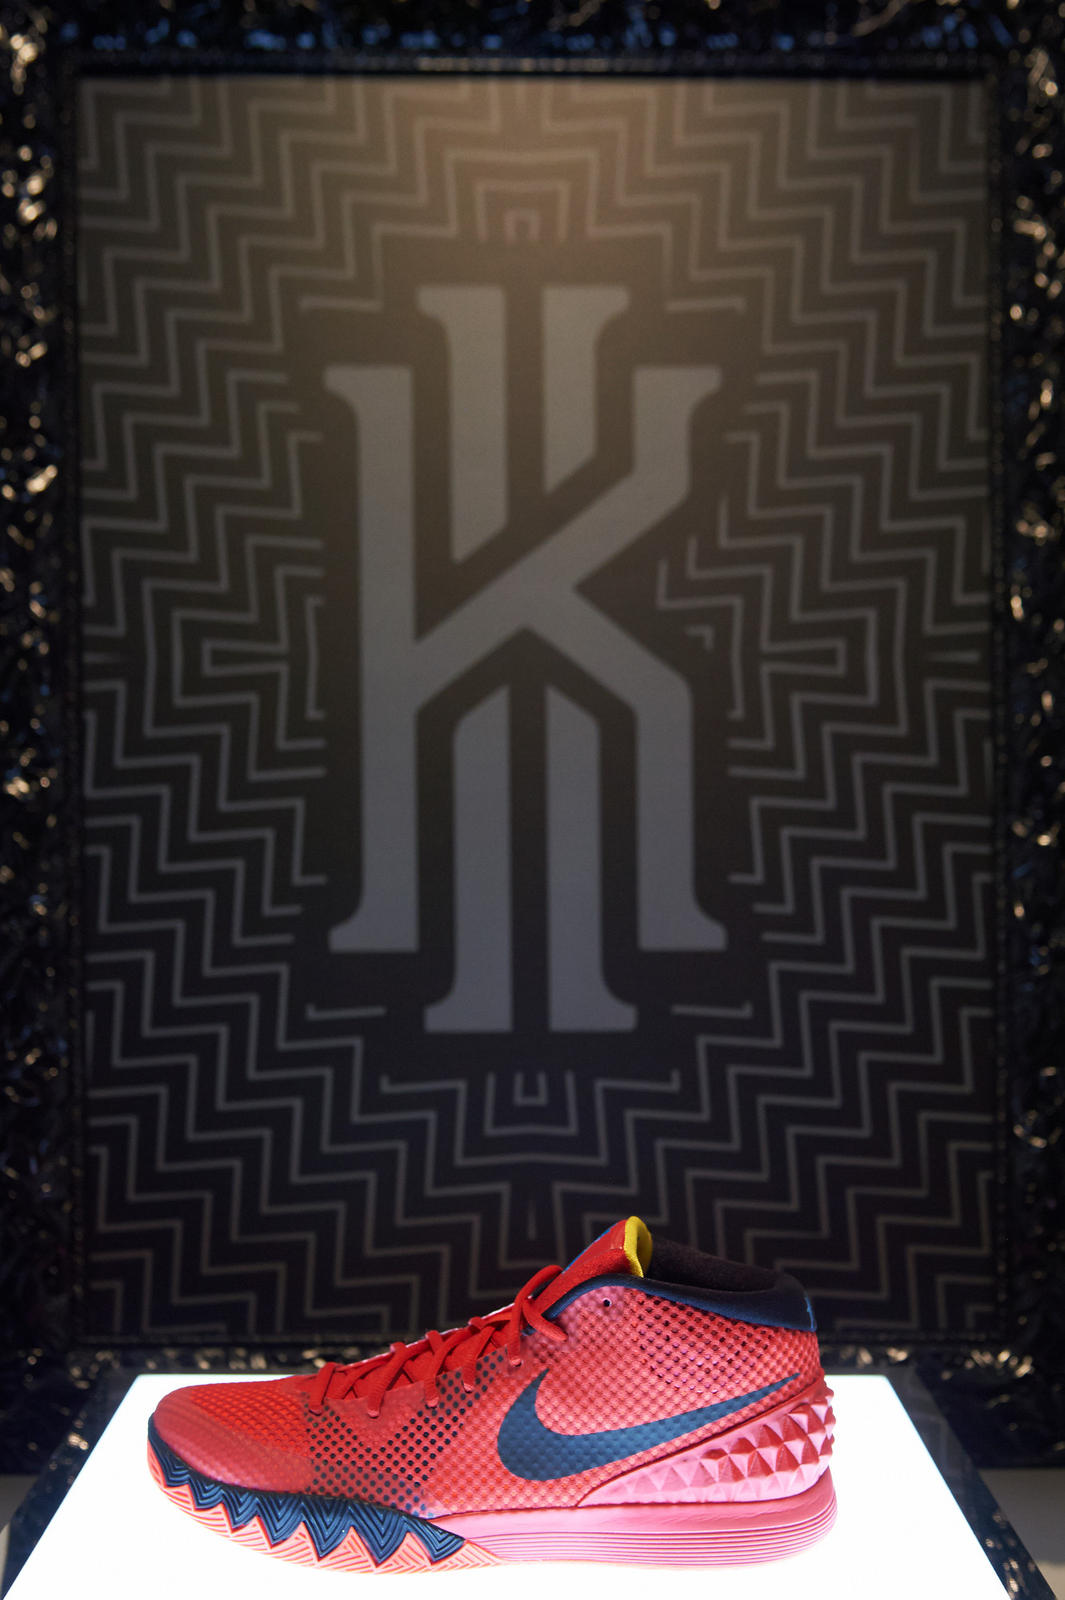 separation shoes 0d5df d776f KYRIE 1 and logo. In Nikes since before he could walk, Irving s new KYRIE 1  is designed for the next generation of players.